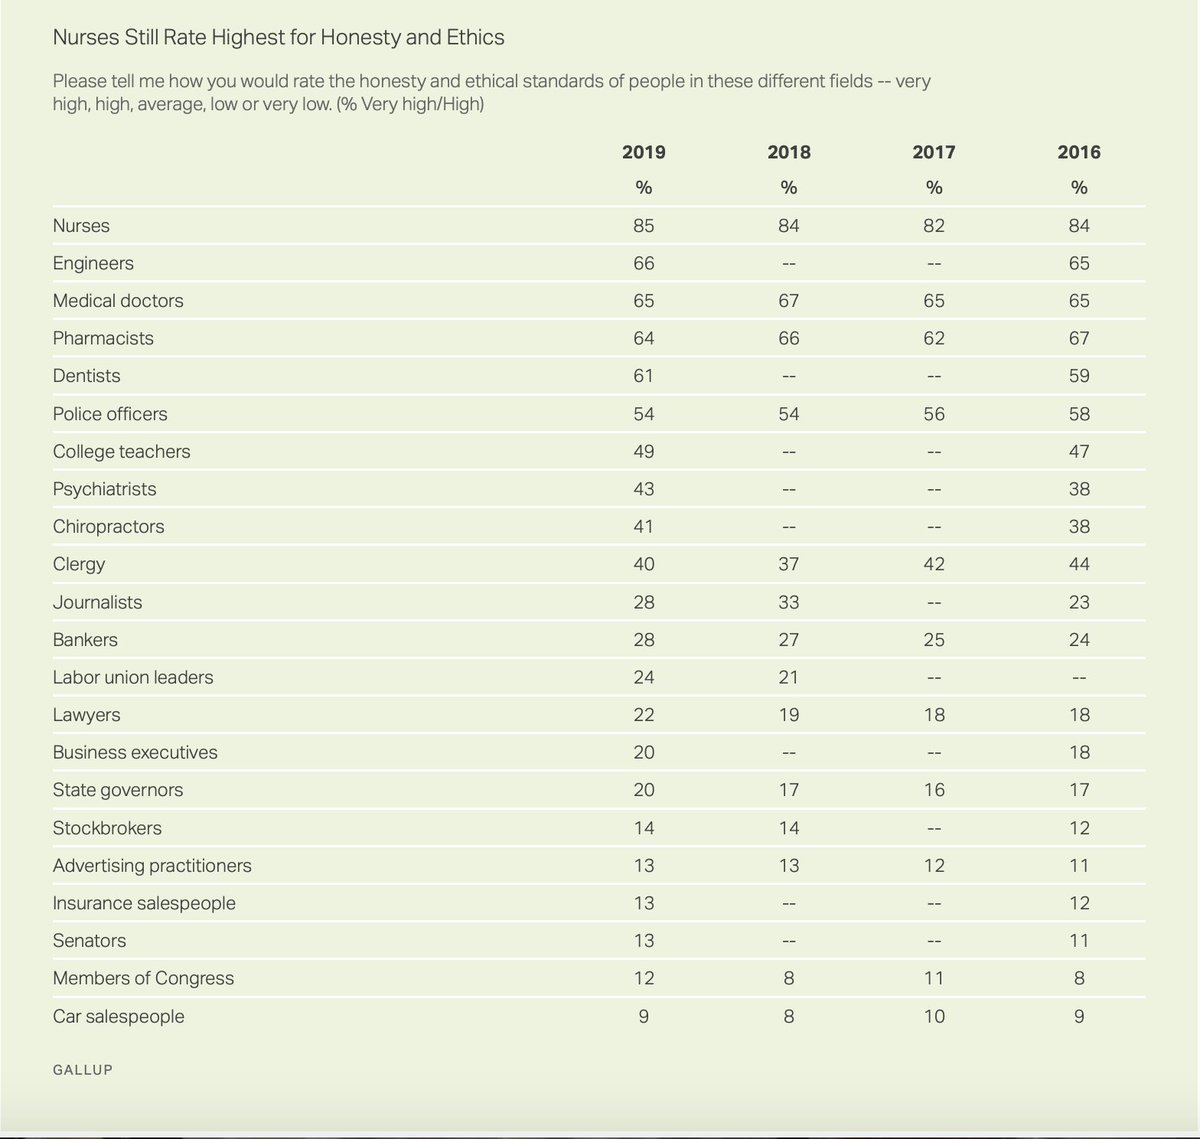 Profession that rates highest for honesty & ethics: Nurses. Professions that rate lowest: Members of Congress, car salespeople. news.gallup.com/poll/274673/nu…